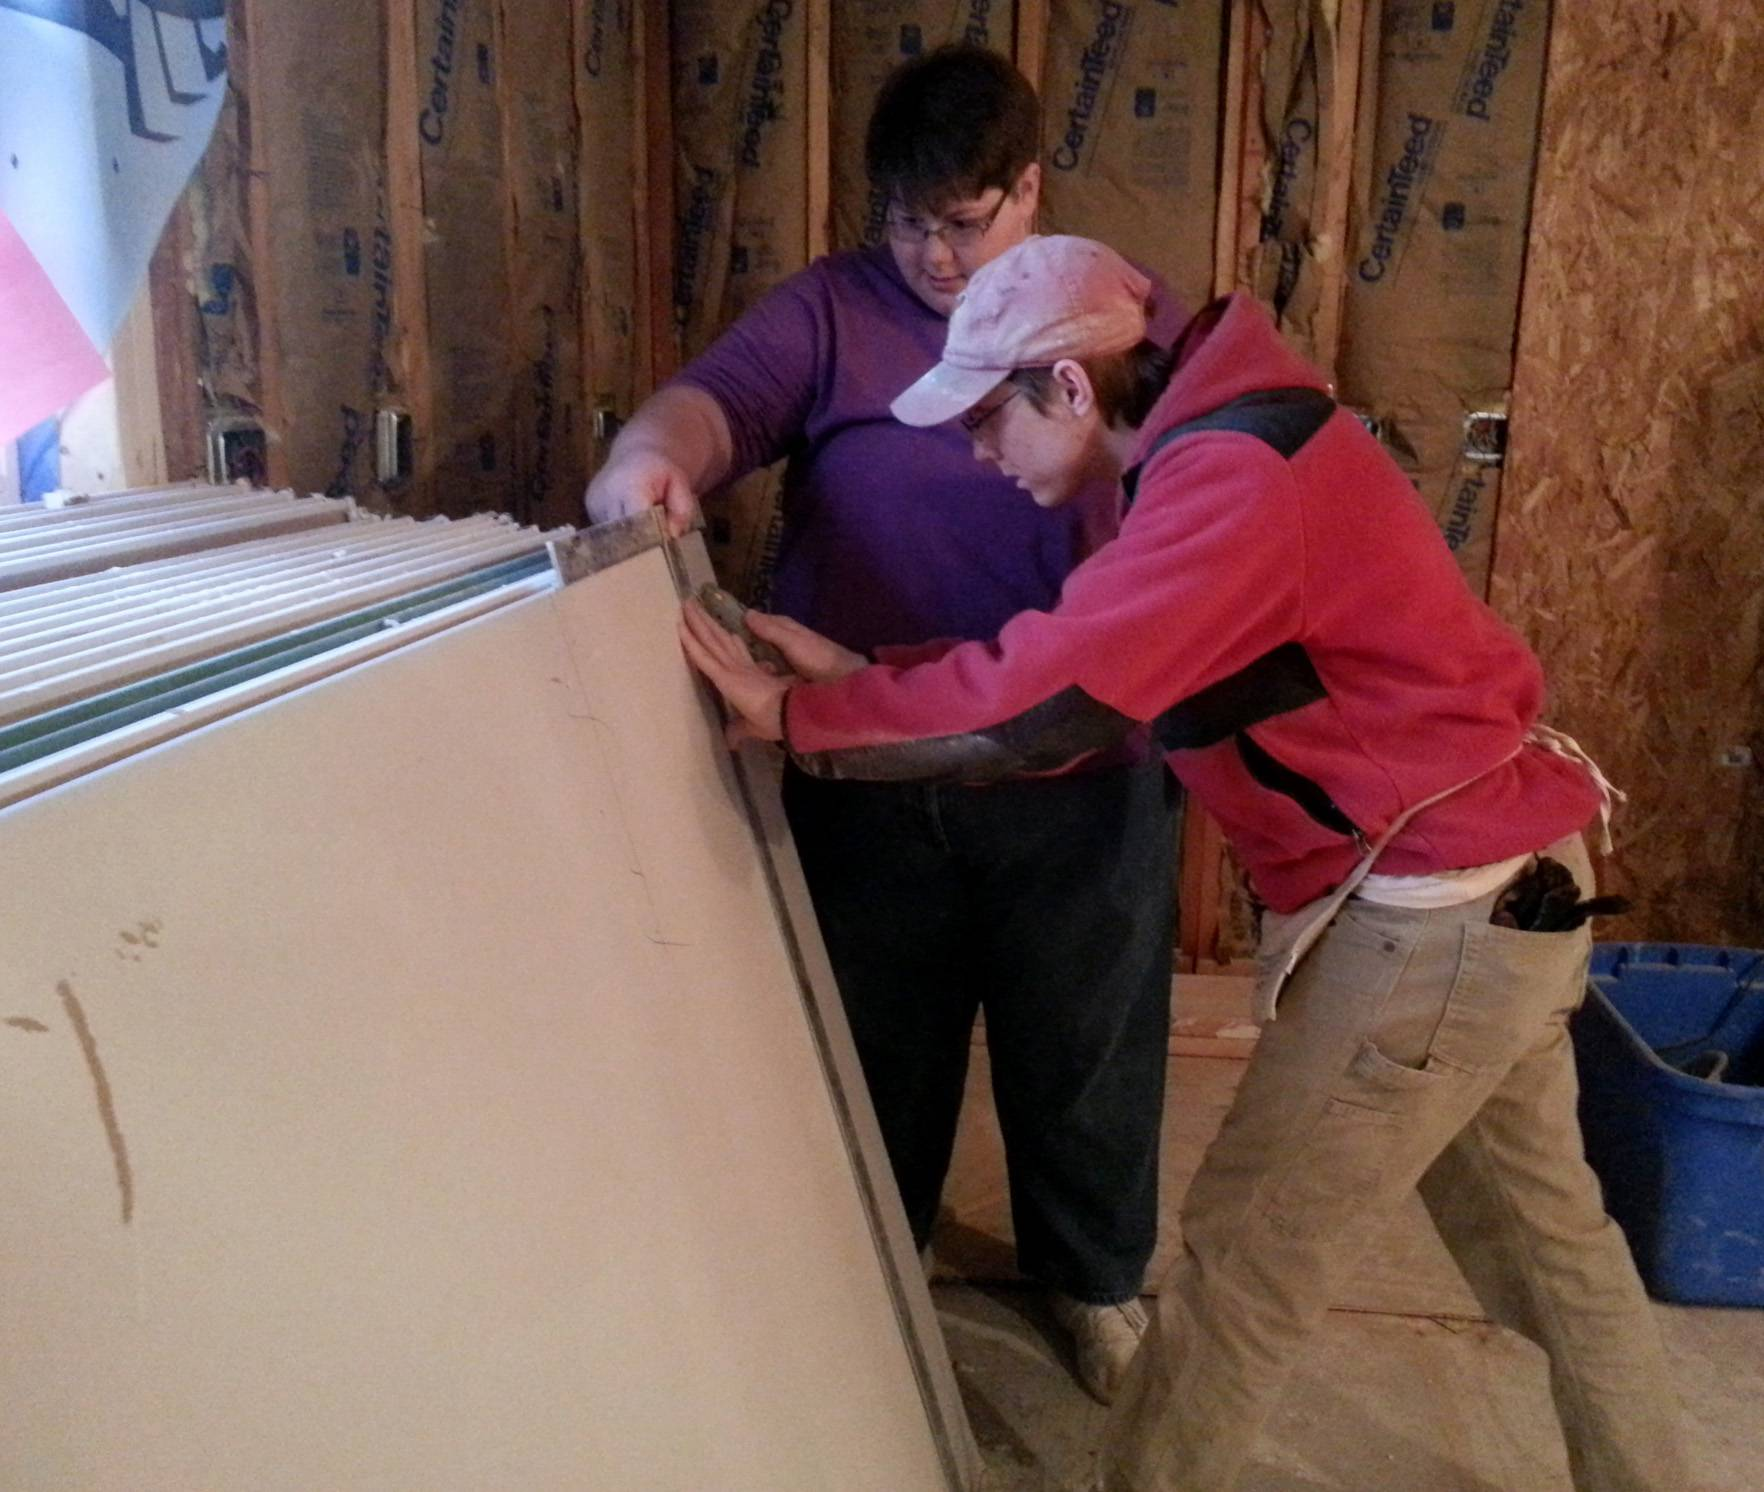 Jason Bauer and Megan Kathka cut drywall that is being installed this week at a Habitat for Humanity home in Carpentersville. A group of 10 Elgin Community College students participated in an Alternative Spring Break program offering students a chance to volunteer in the community for course credit.